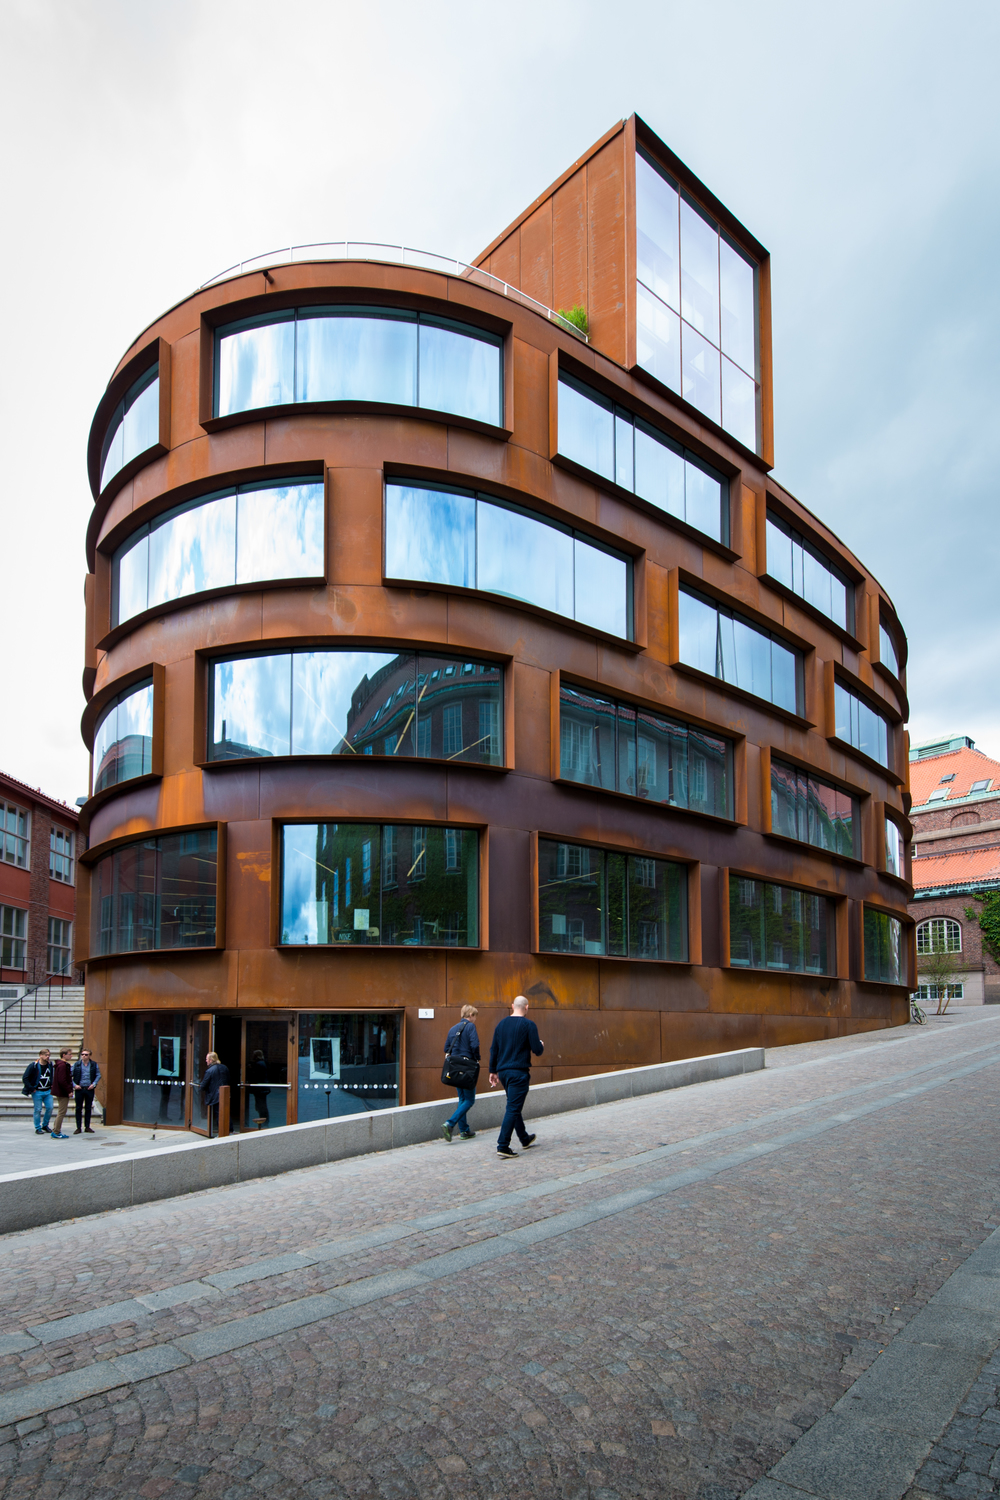 Stockholm's Royal Institute of Technology architecture building with a robust corten steel exterior.